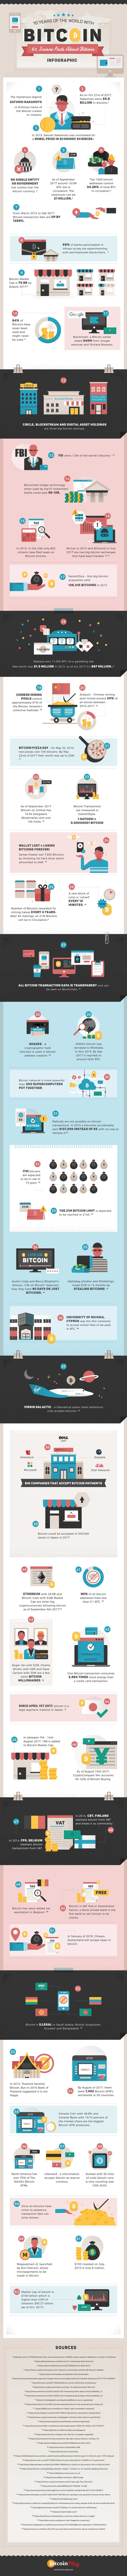 62-facts-on-bitcoin